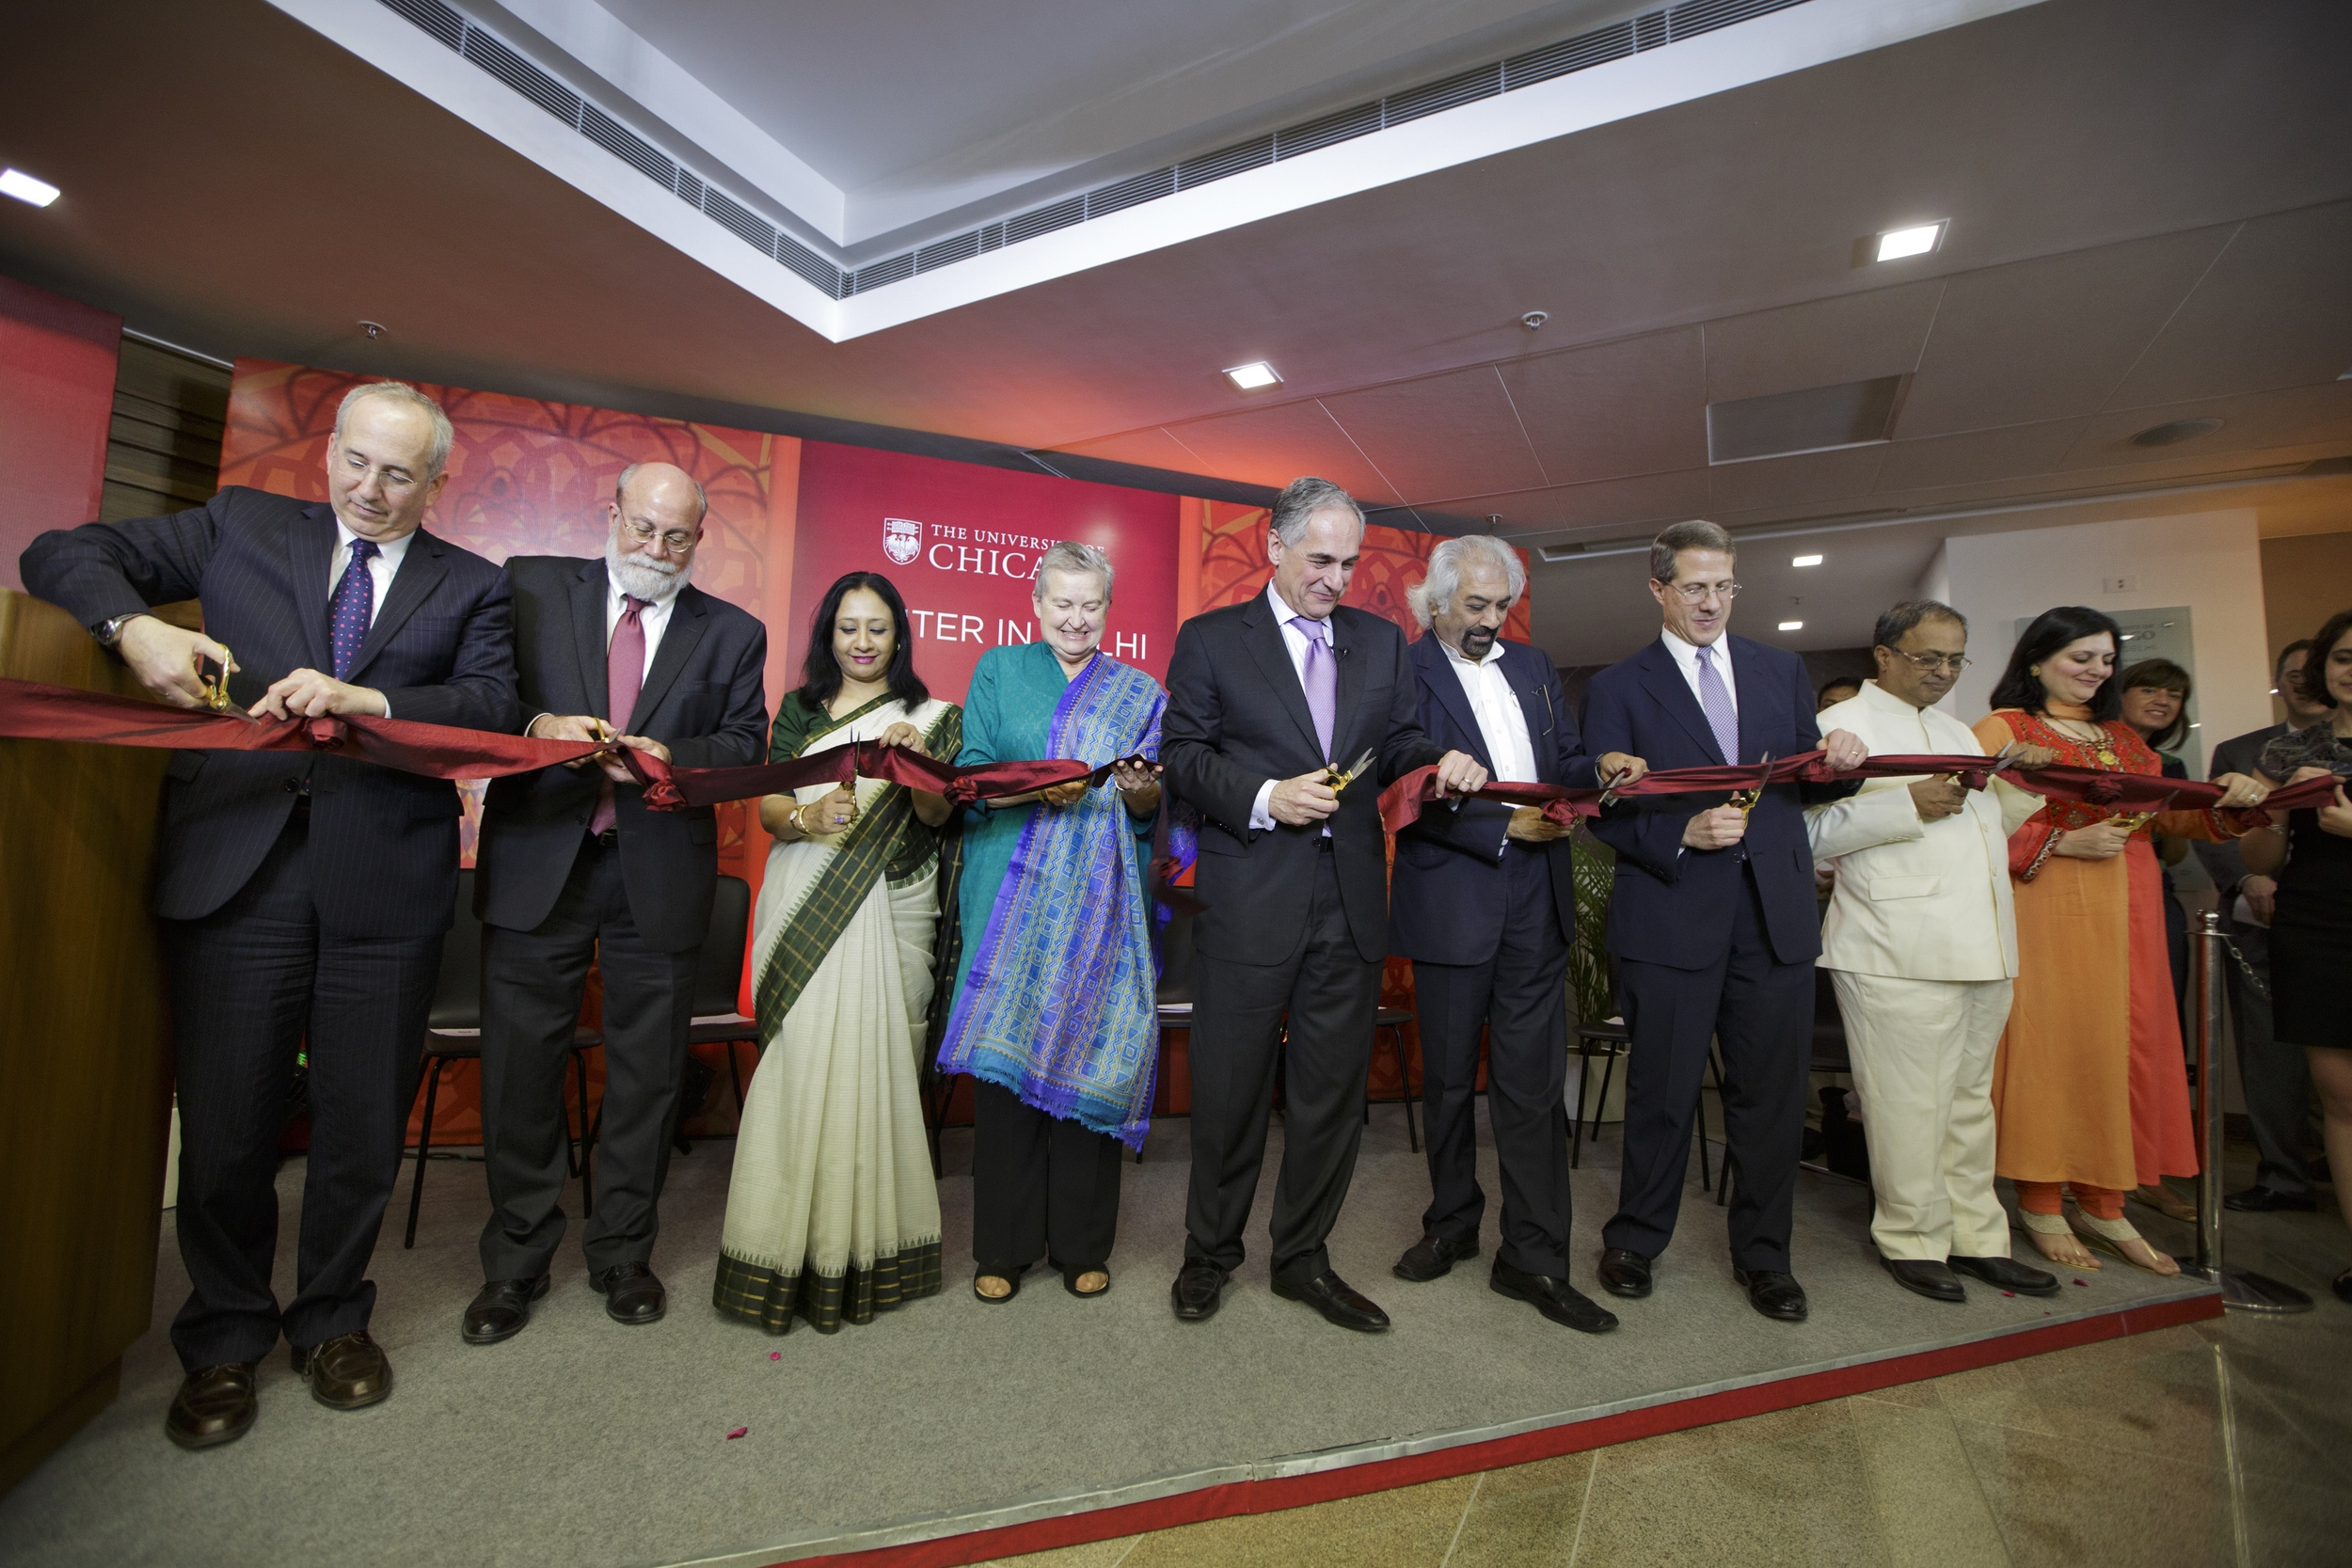 Ribbon cutting ceremony at the University of Chicago Center in Delhi on March 29, 2014.(Photo by Kuni Takahashi)